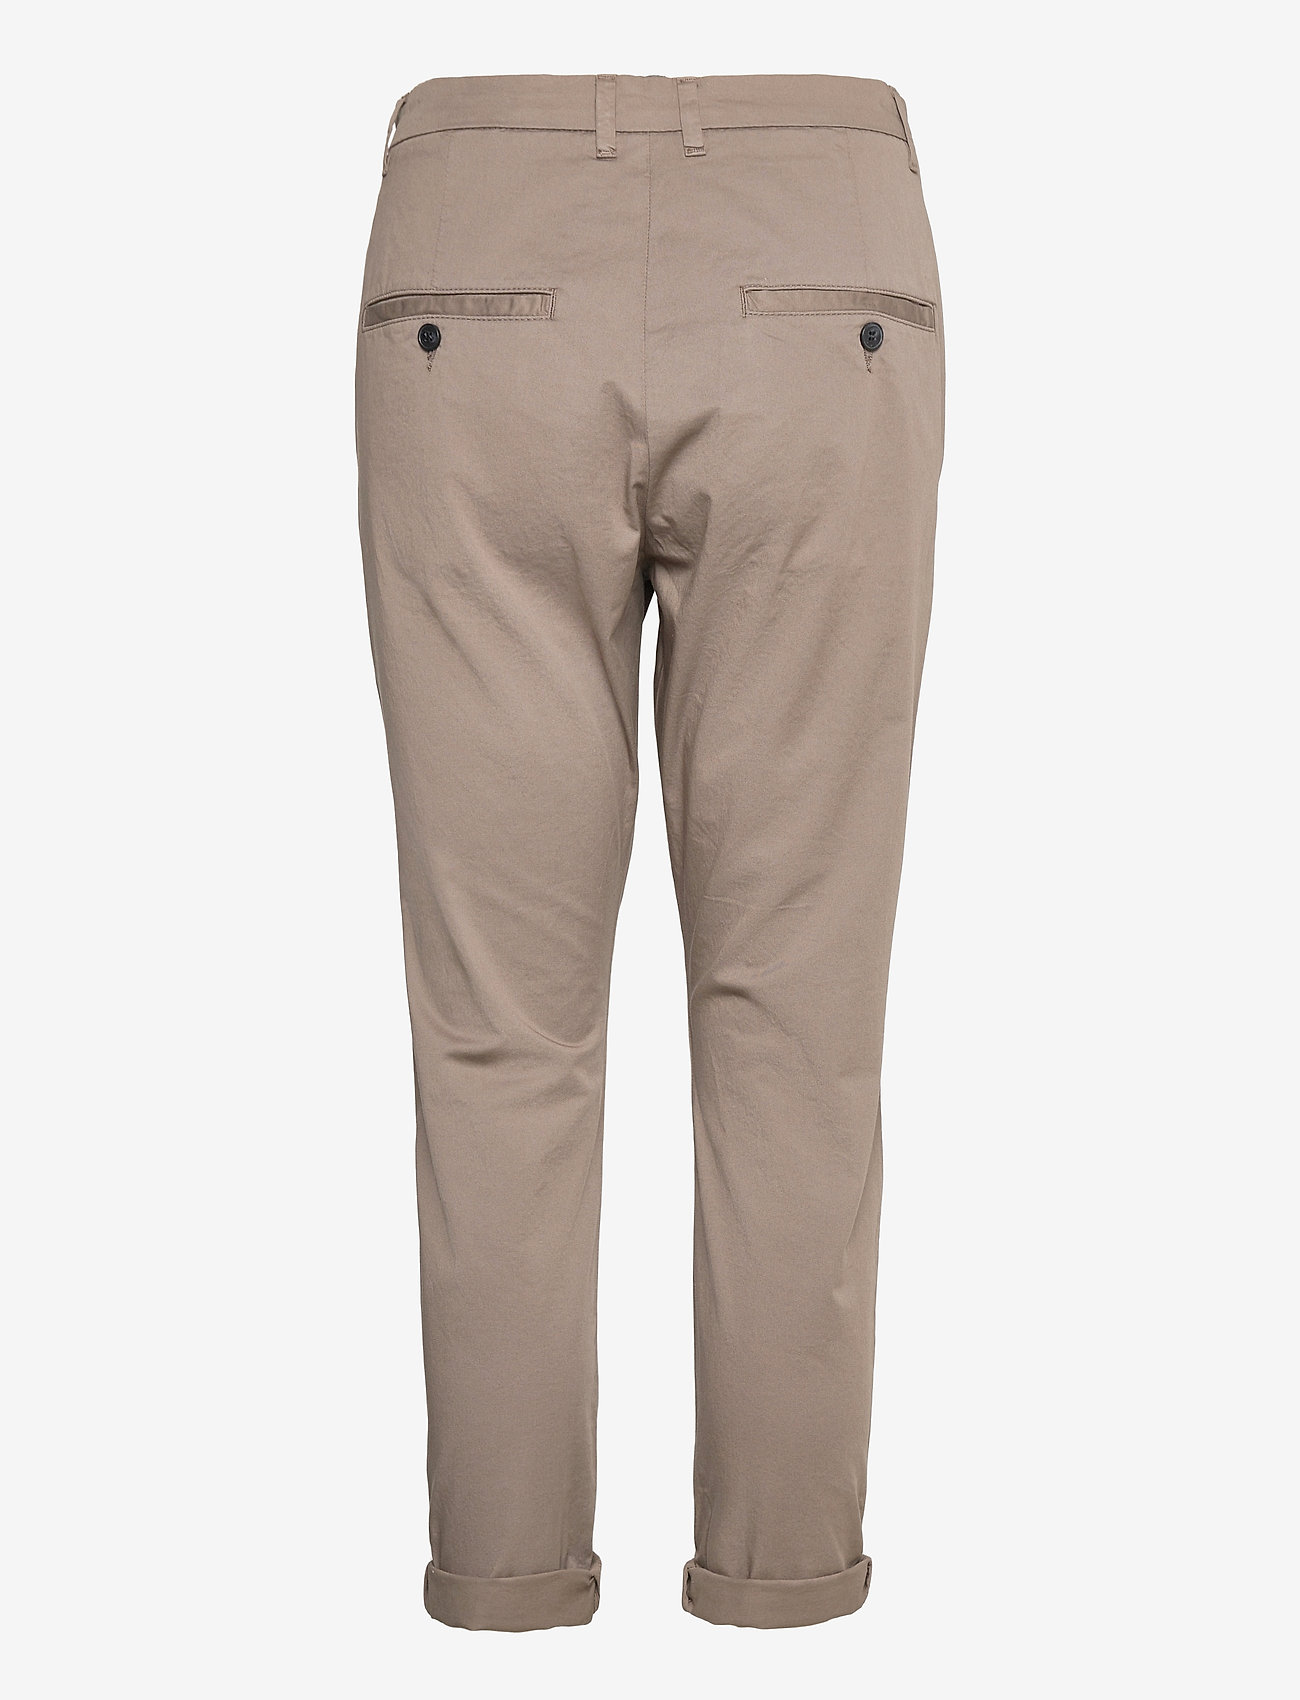 News Edit Trousers (Olive) (90 €) - Hope O4dcI